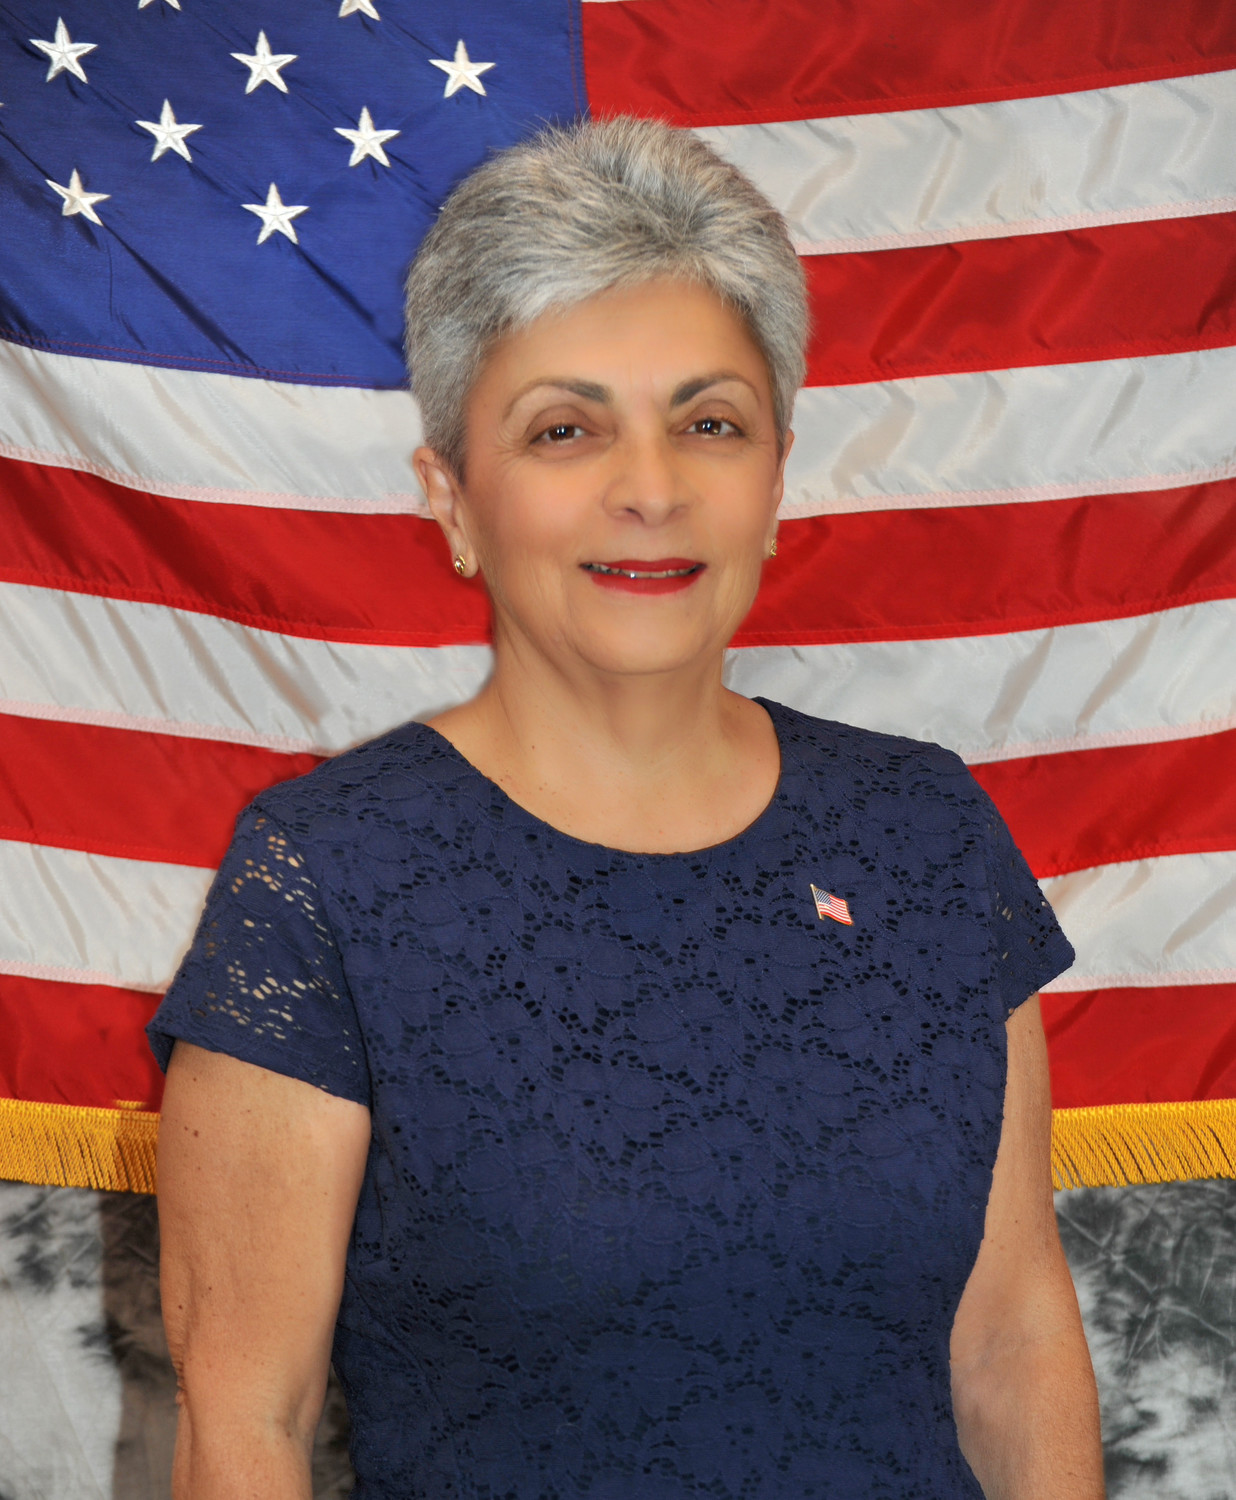 Zefy Christopoulos